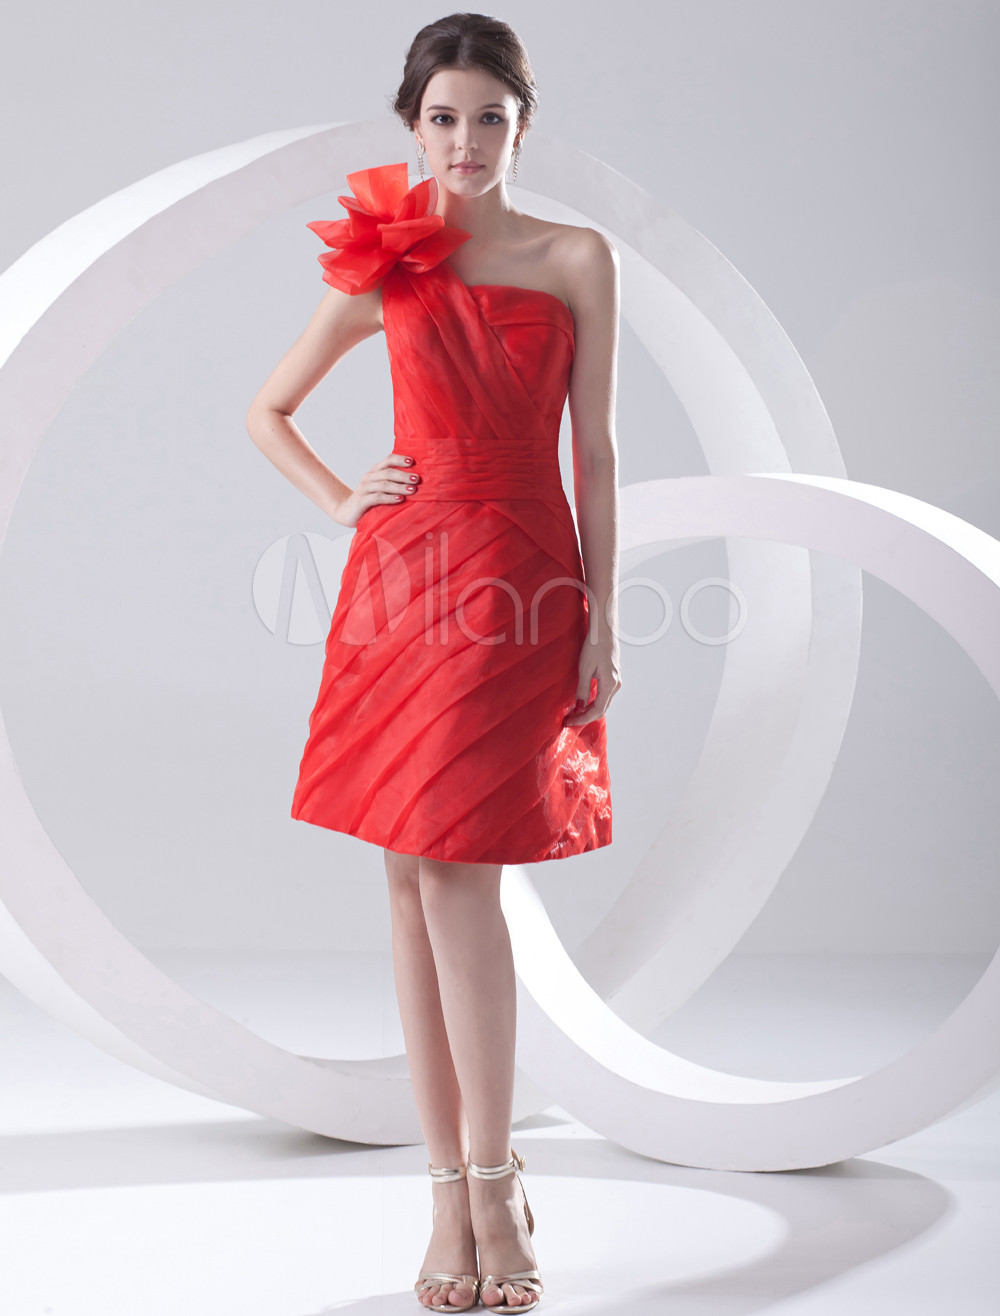 A-line Red Organza Floral One-Shoulder Knee-Length Bridesmaid Dress For Wedding